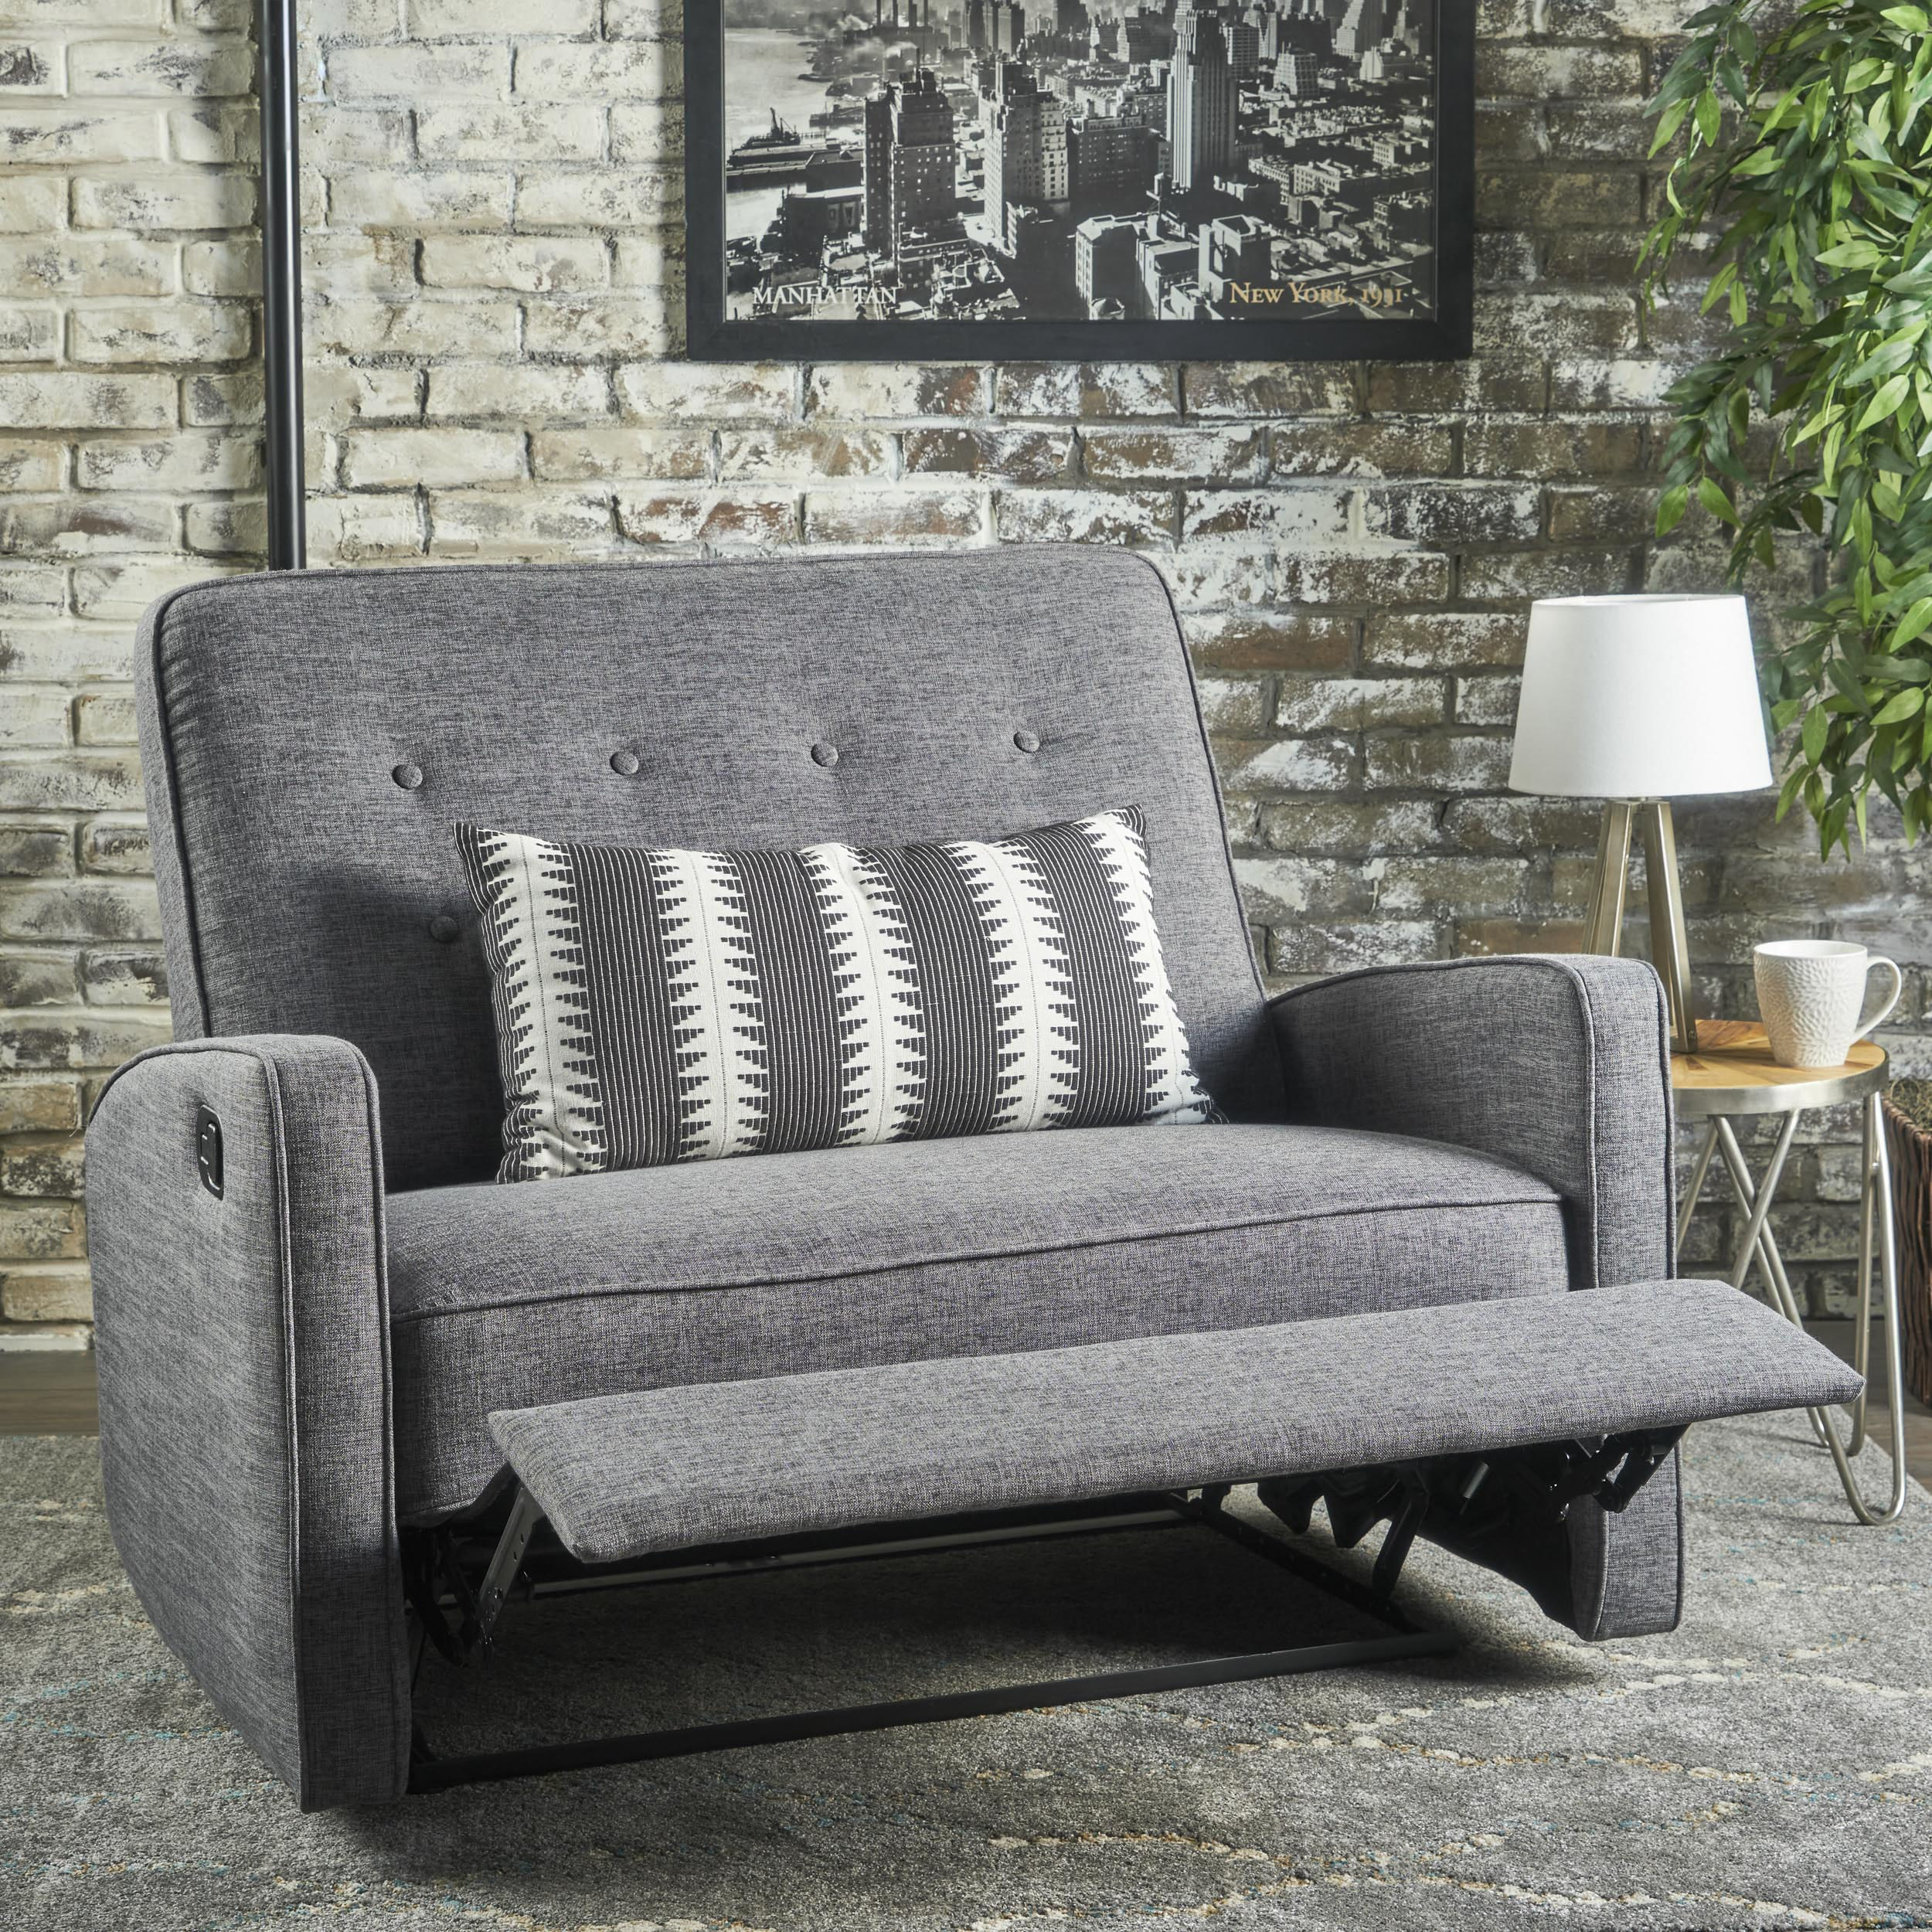 Beau Details About Large Recliner Chair 2 Seater XL Fabric Soft Comfy Adult  2 Seater Living Room